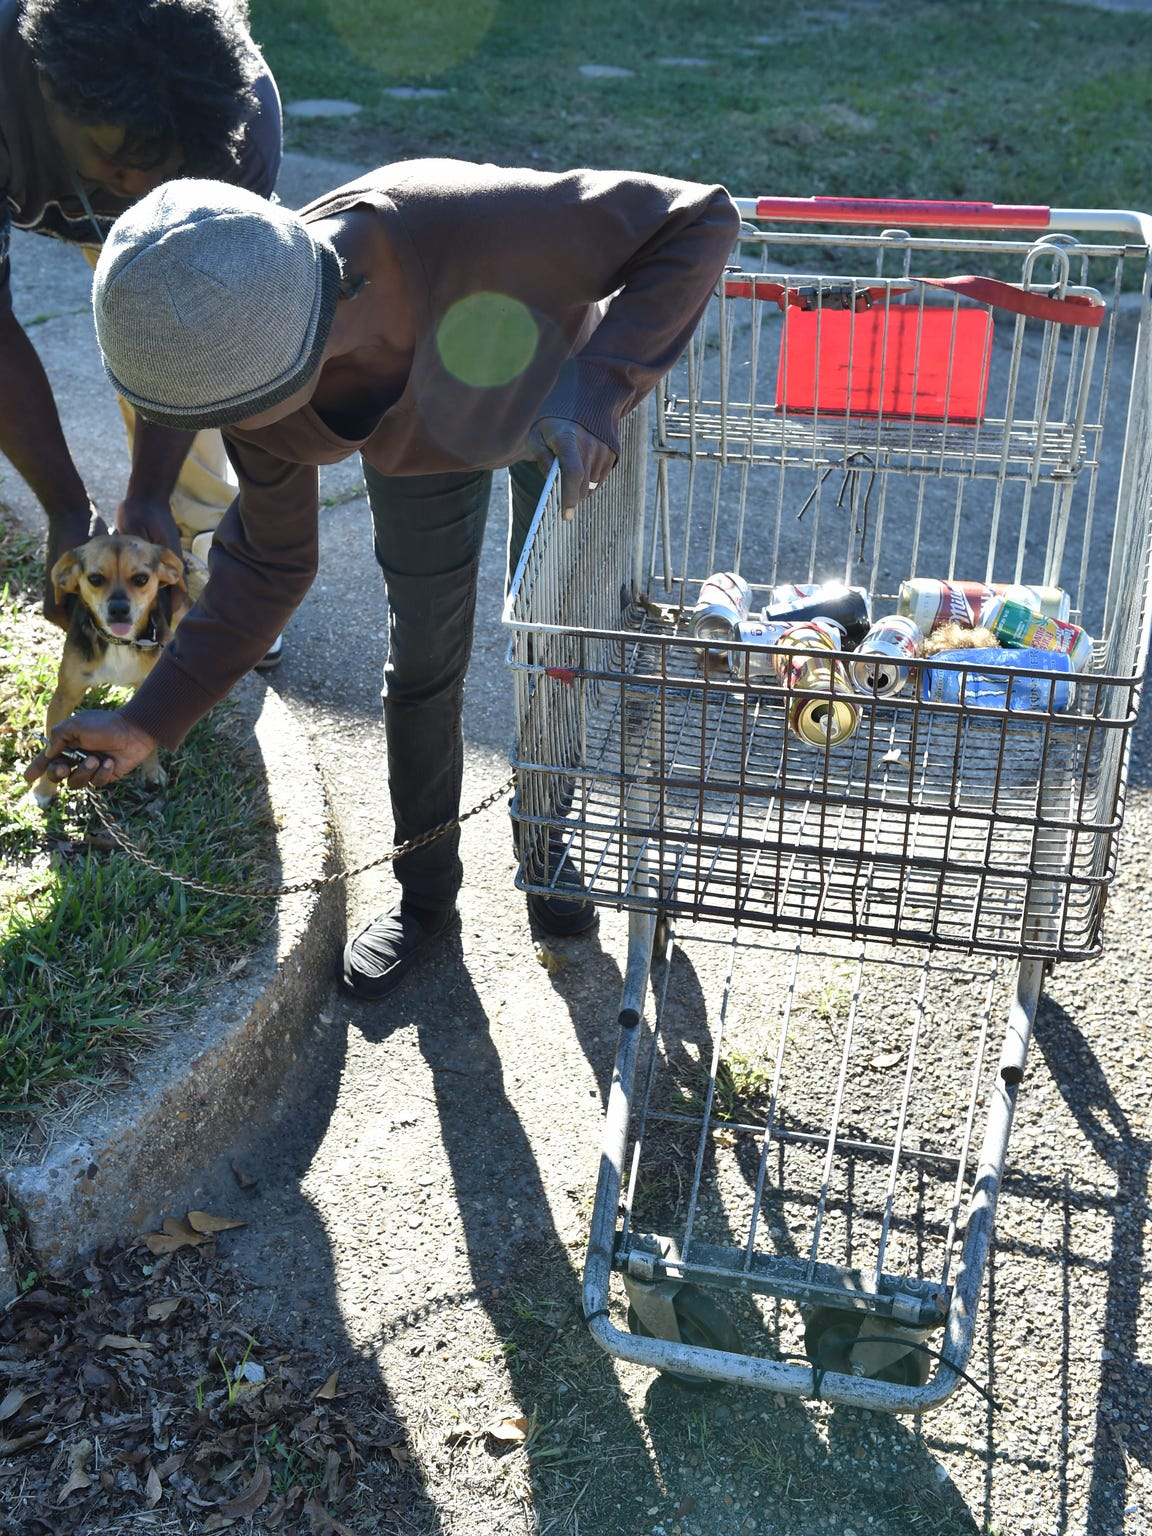 Patricia Aaron prepares her dog Chip for their journey to collect cans around Arron's neighborhood.